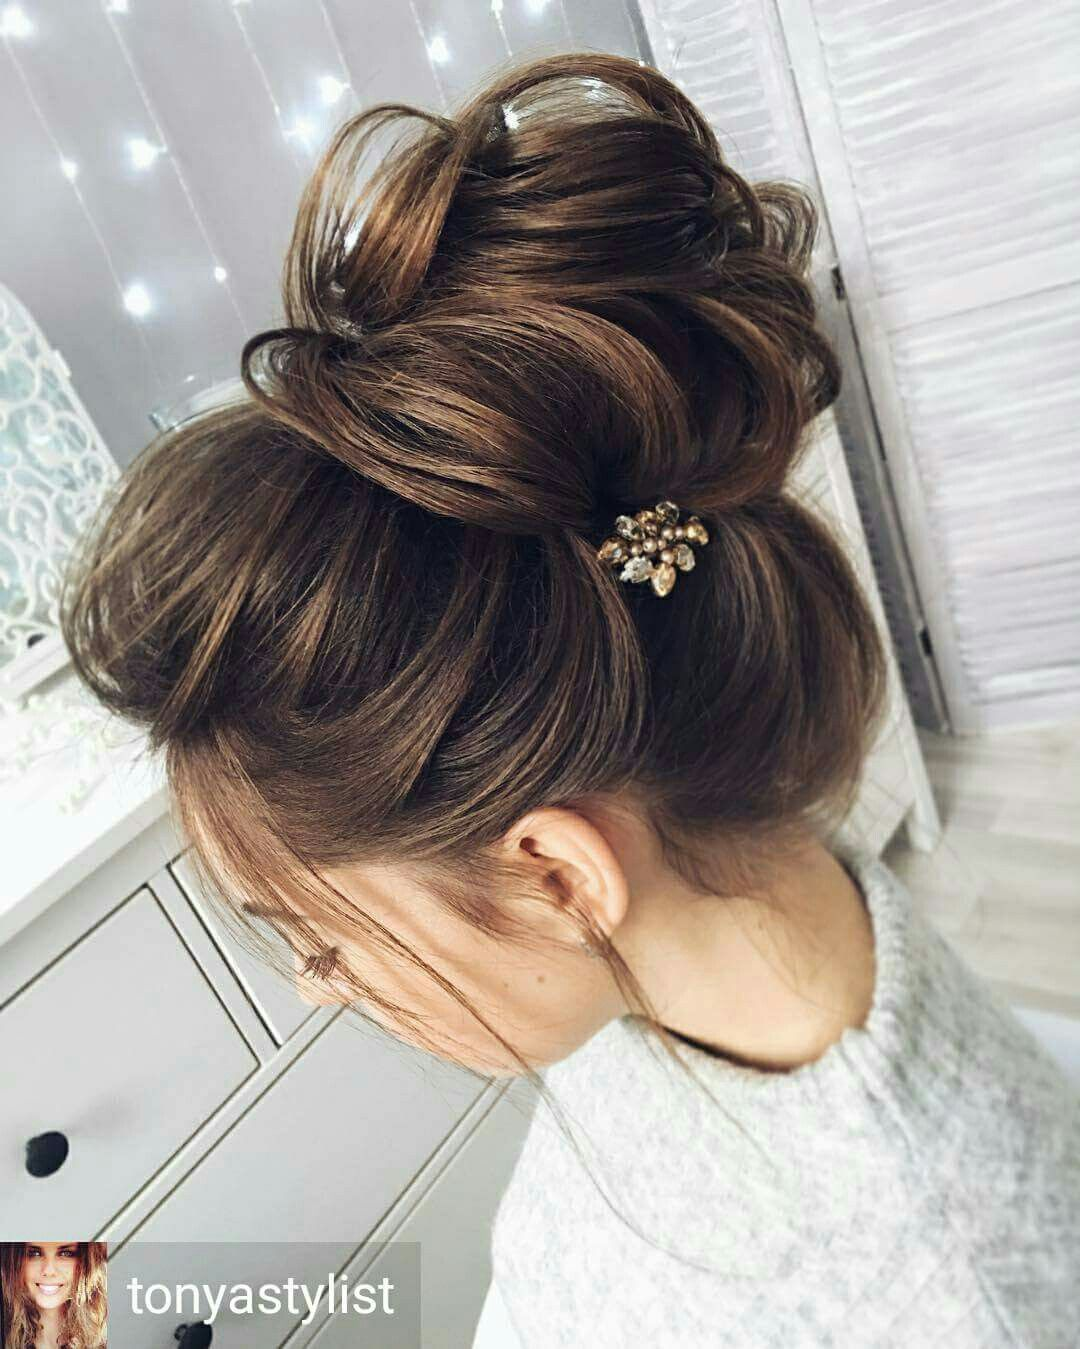 pin by jessica nieva on hair | bun hairstyles for long hair